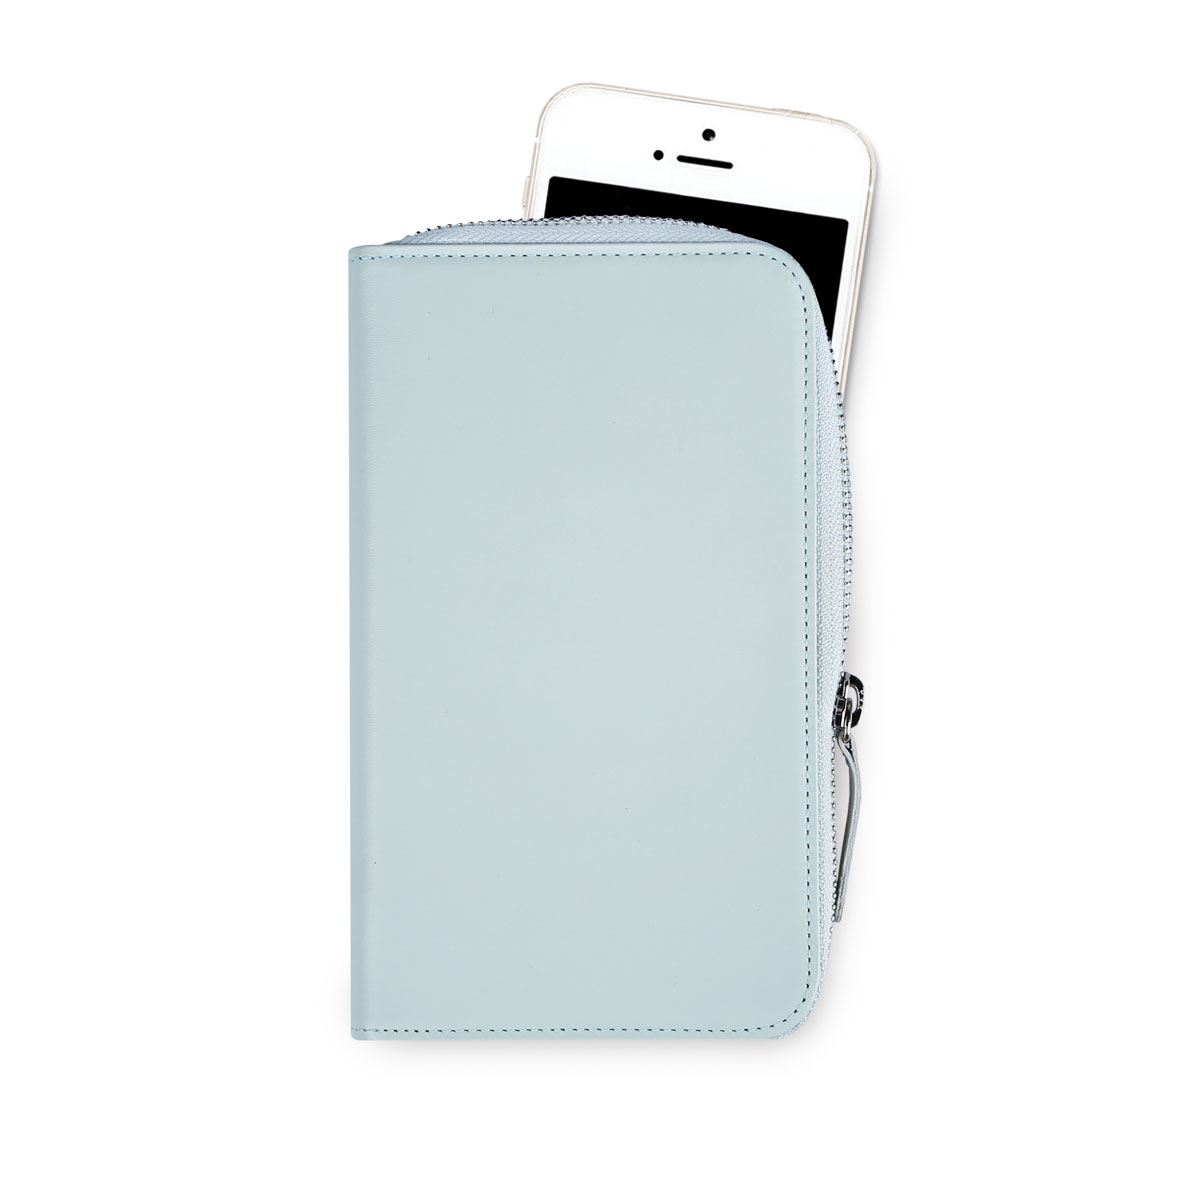 Daily Phone Pocket +_Pale Mint